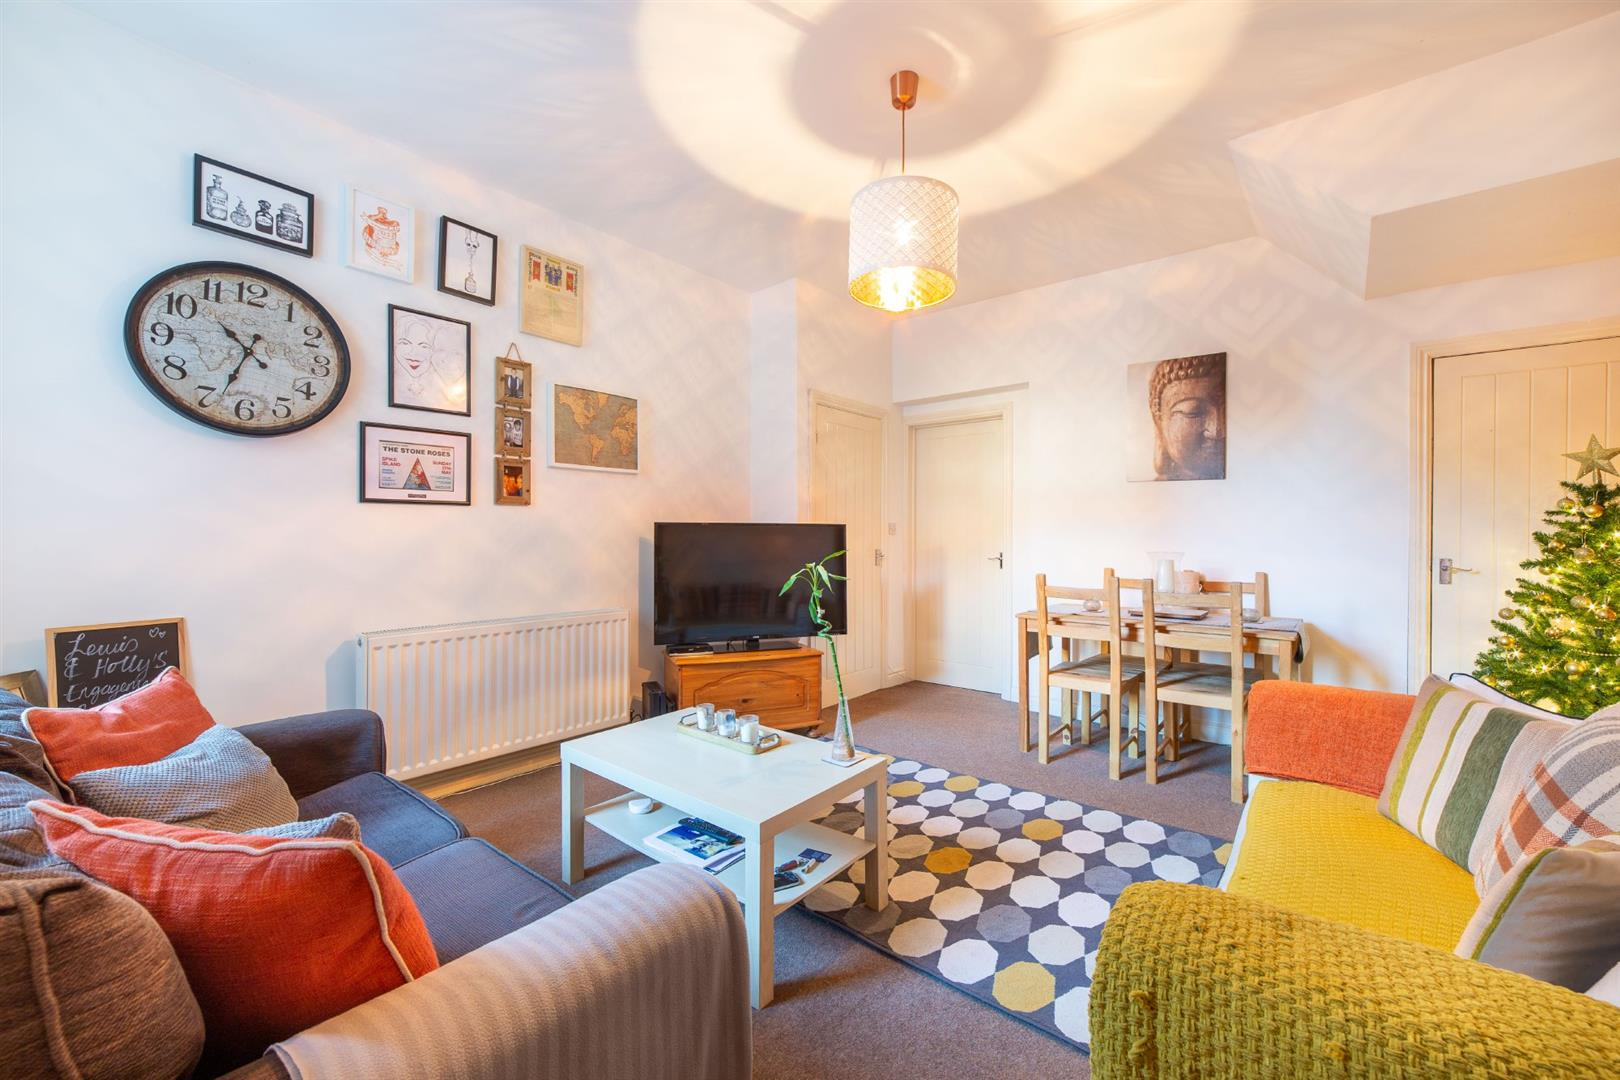 2 bed flat for sale in Newcastle Upon Tyne, NE6 5YB - Property Image 1